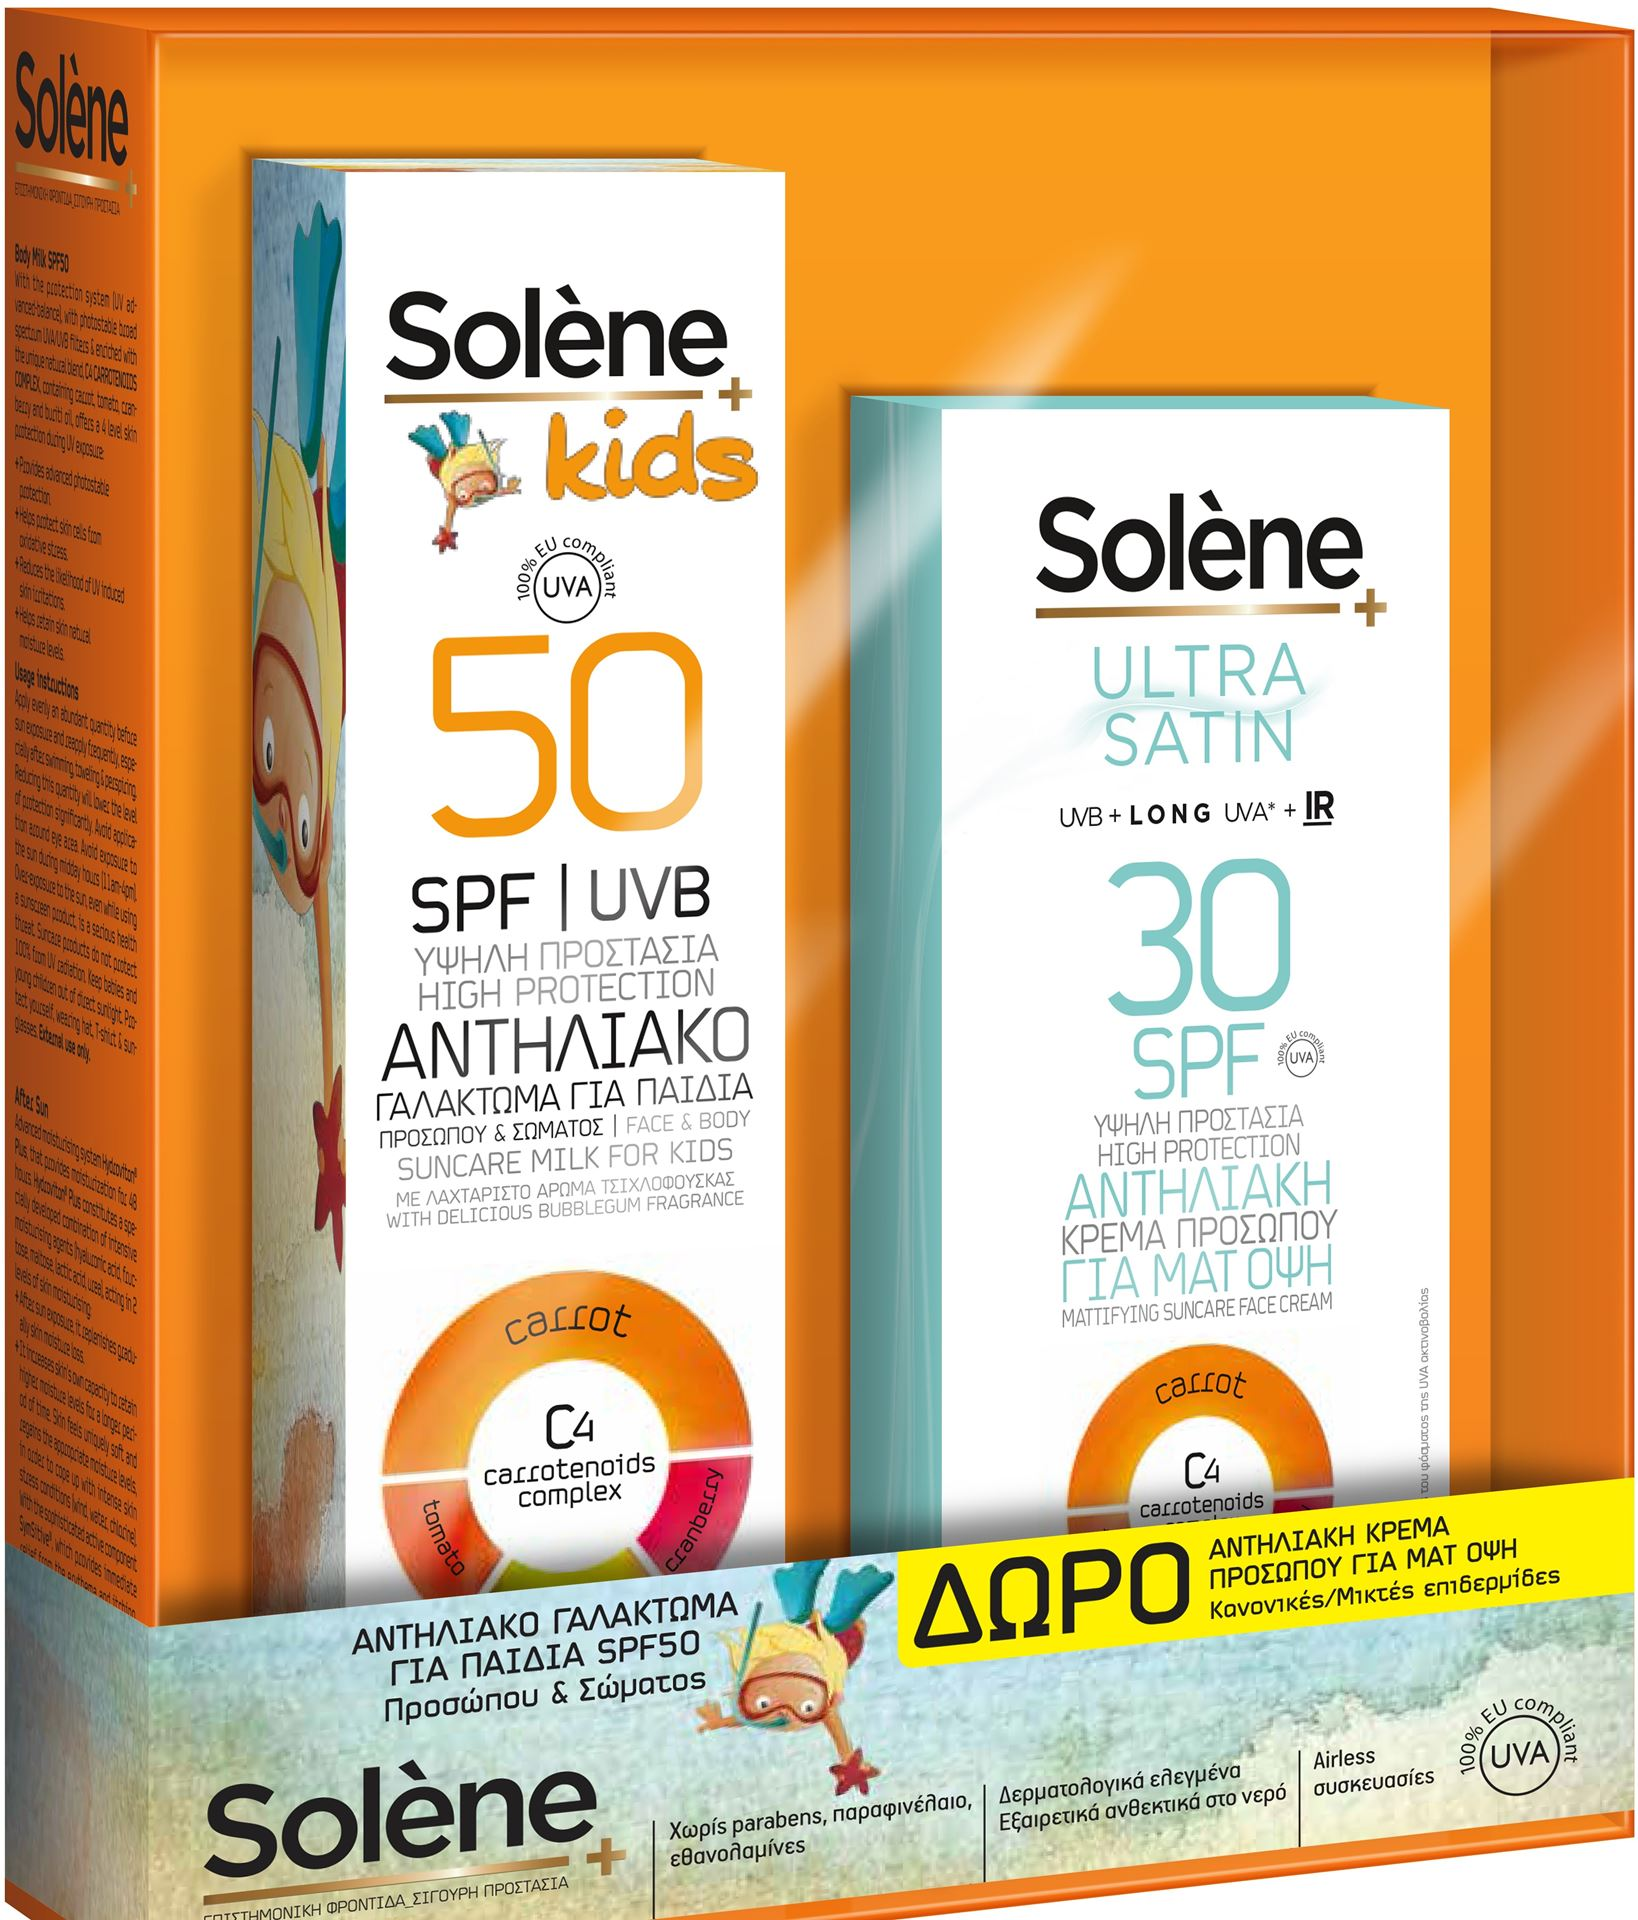 Solene Kids SPF50 150ml kai doro Ultra Satin SPF30 50ml